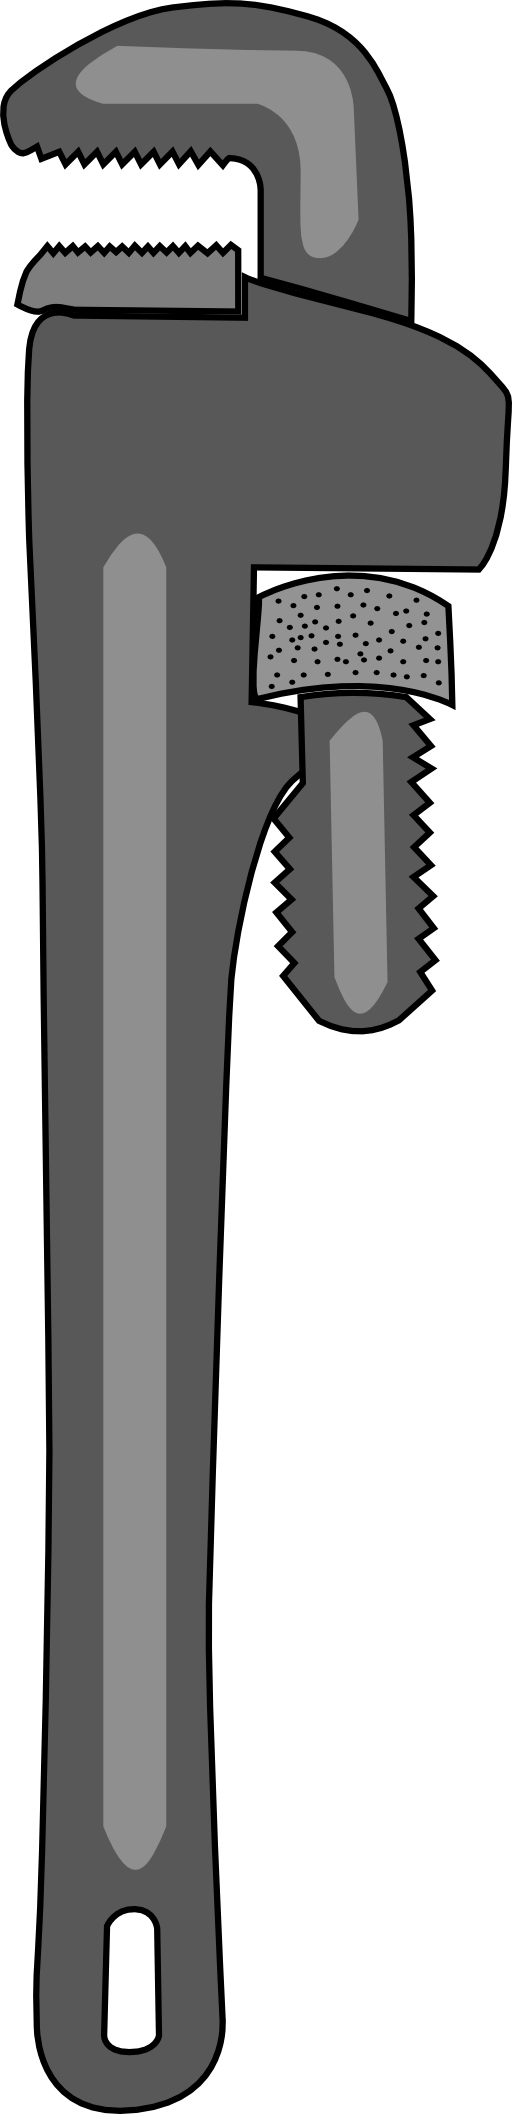 Pipe Wrench Clipart   I2clipart   Royalty Free Public Domain Clipart